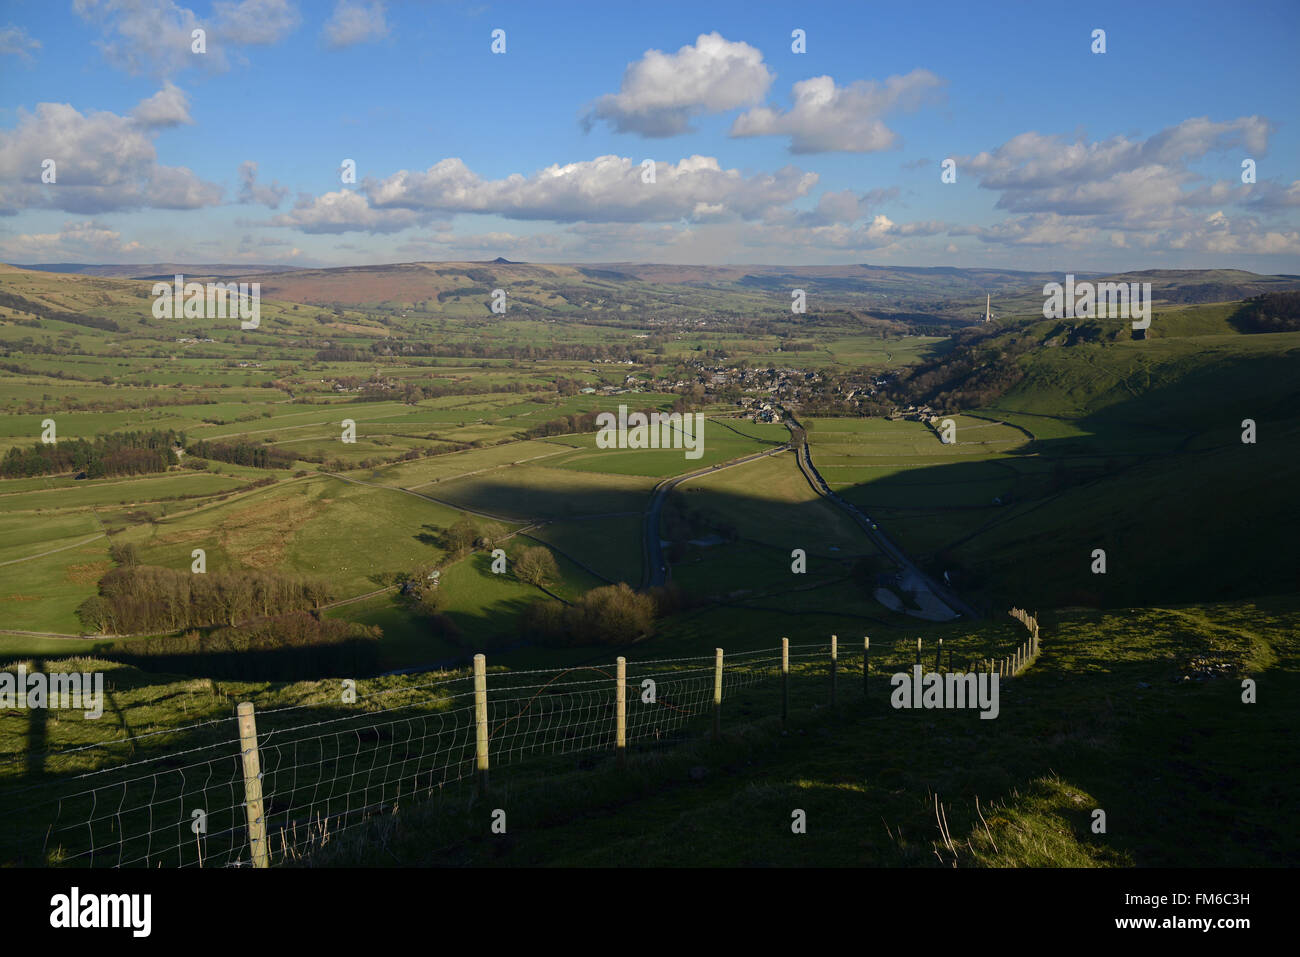 View of Hope Valley looking towards Castleton in the Peak District of Derbyshire, England. - Stock Image